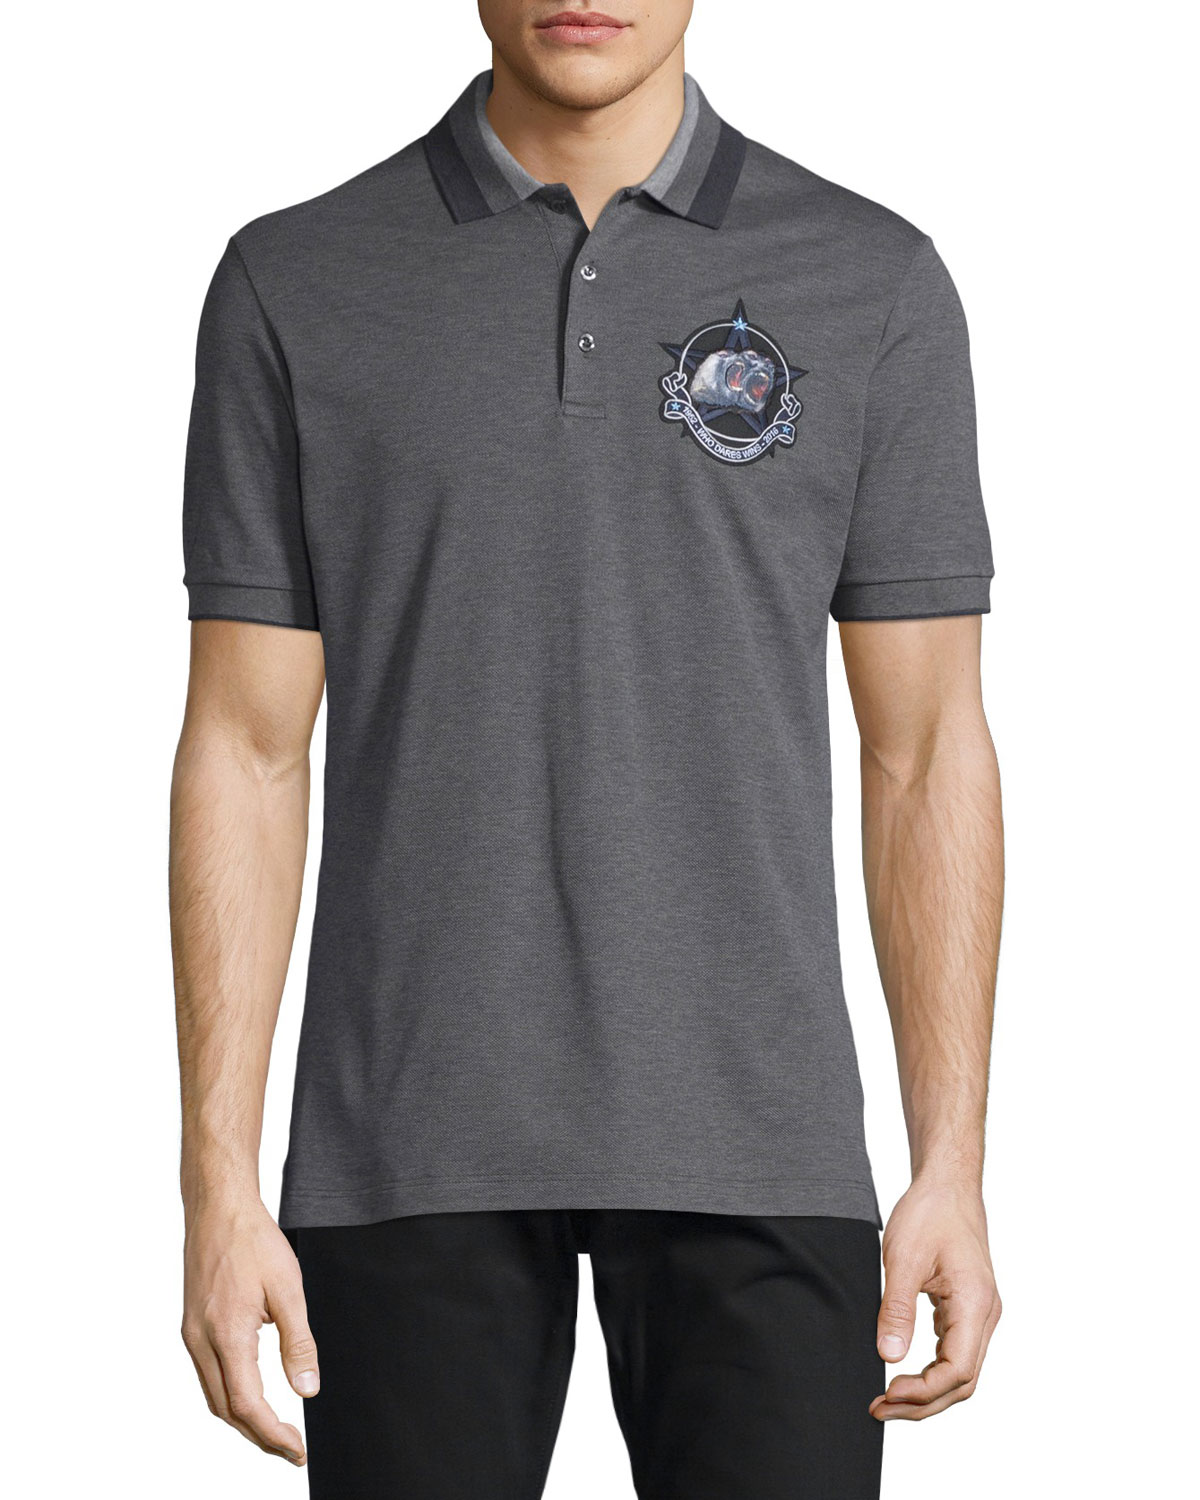 Monkey Brothers Pique Polo Shirt